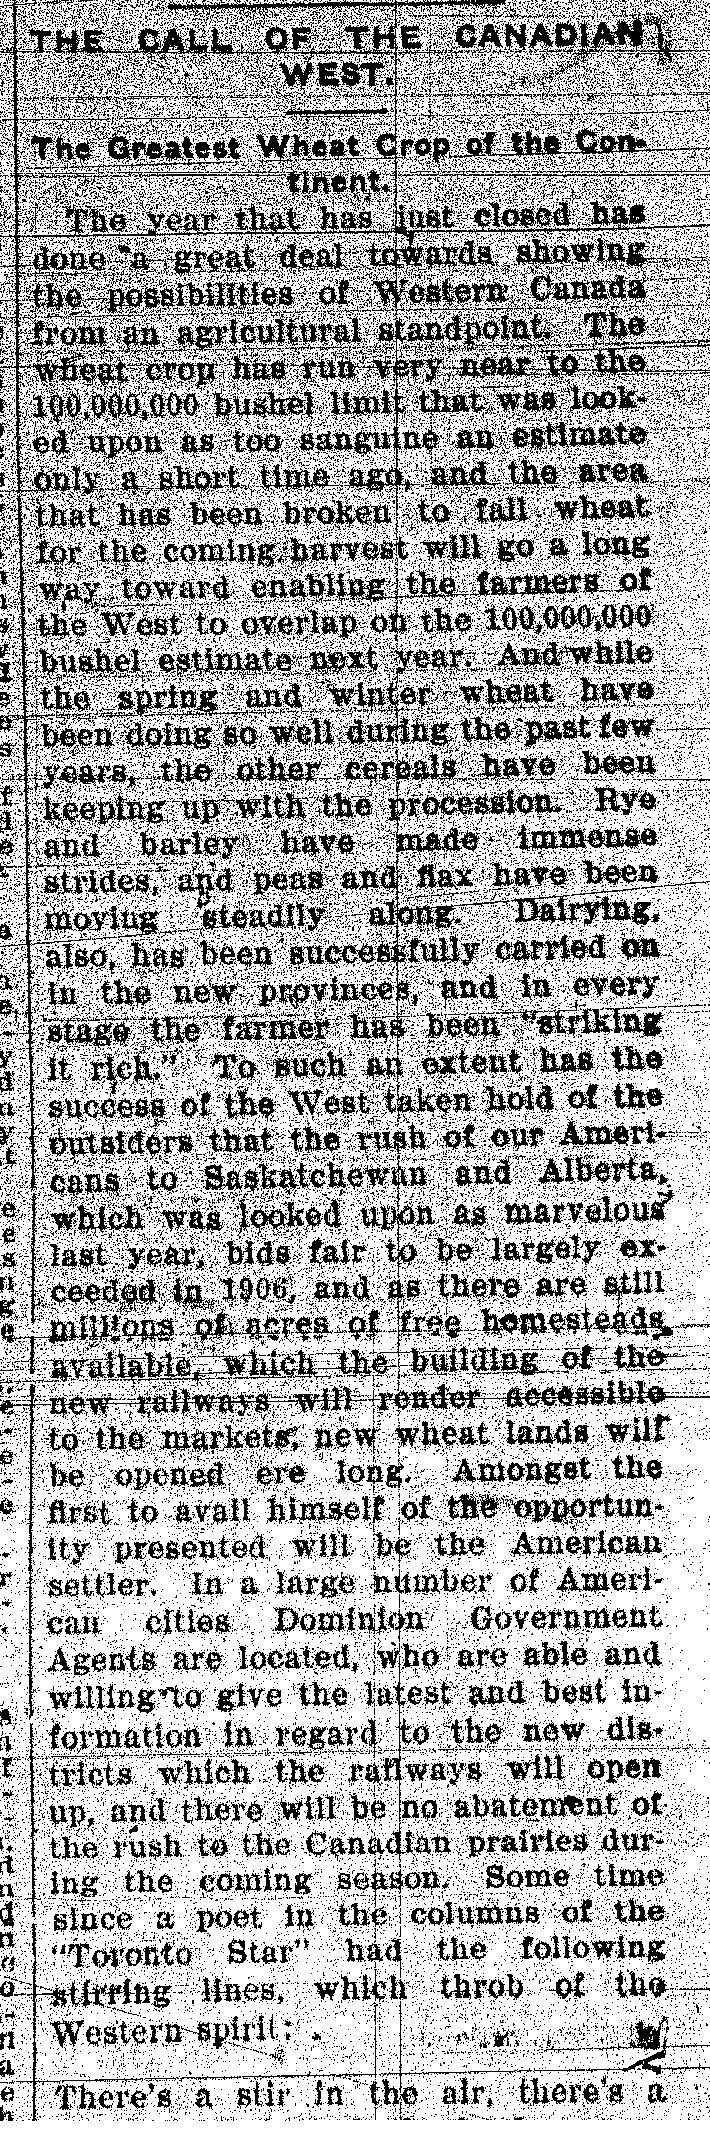 News Ad Late 1890s Early 1900s For Canadian West